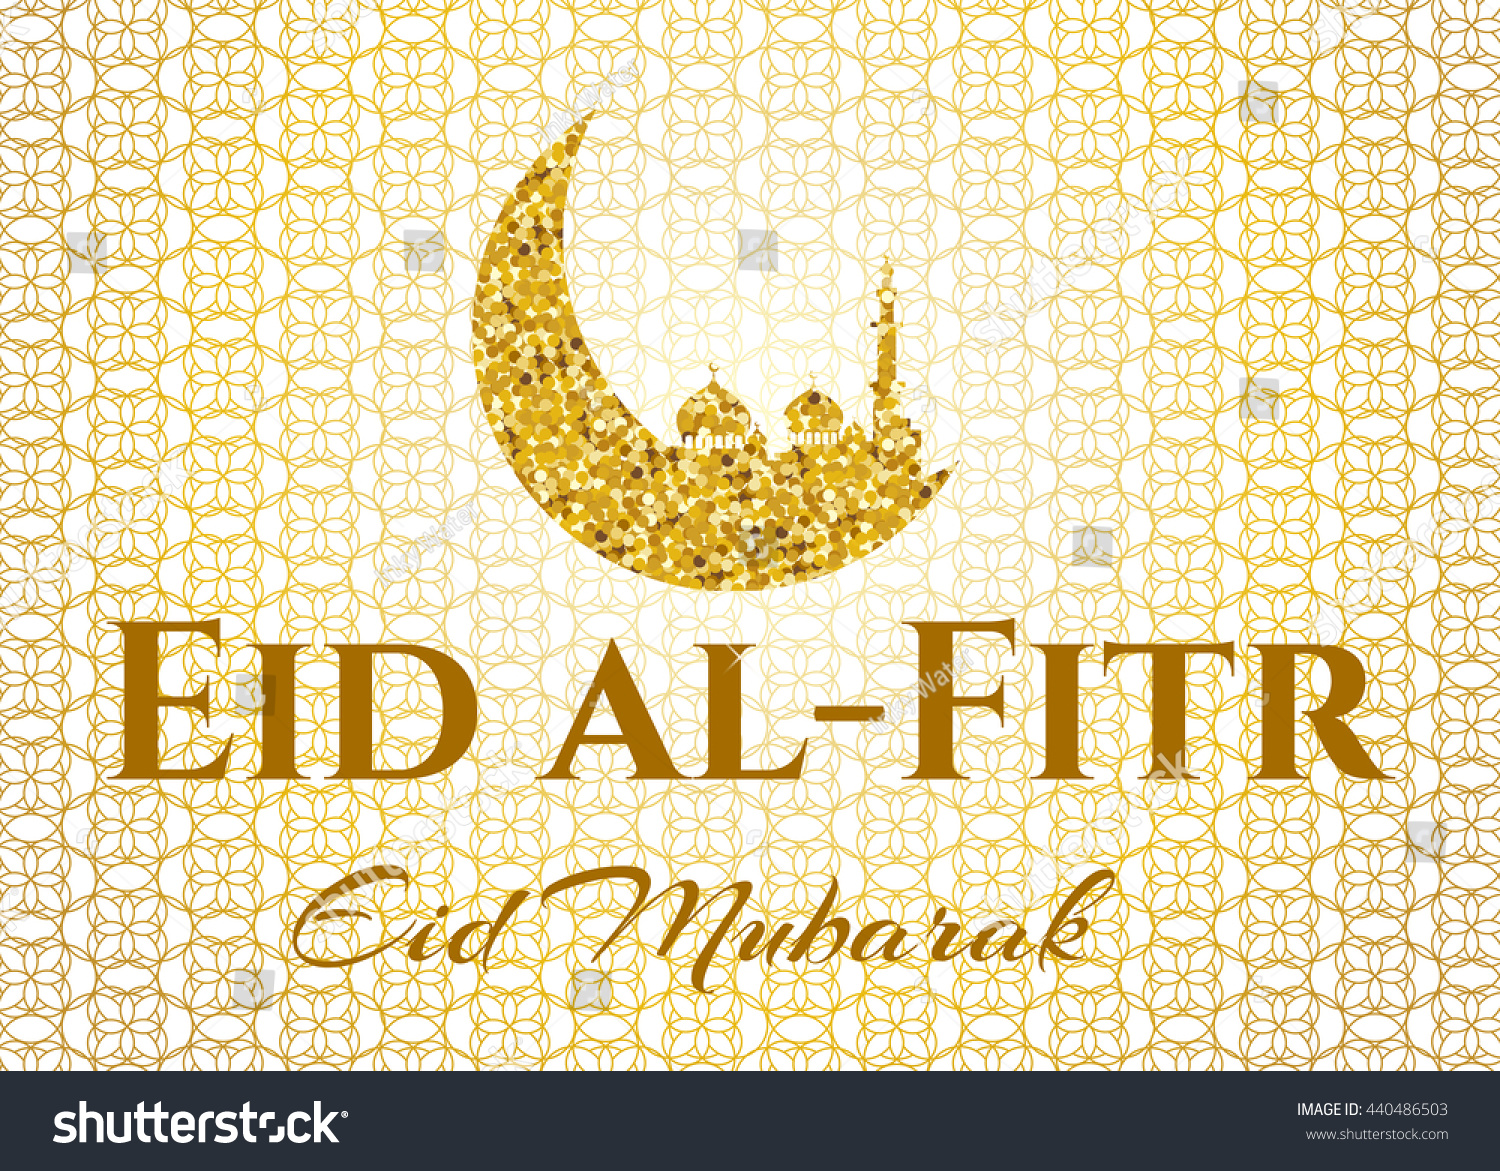 Wonderful Idd Eid Al-Fitr Greeting - stock-vector-illustration-eid-al-fitr-greeting-card-with-moon-and-mosque-440486503  You Should Have_937848 .jpg